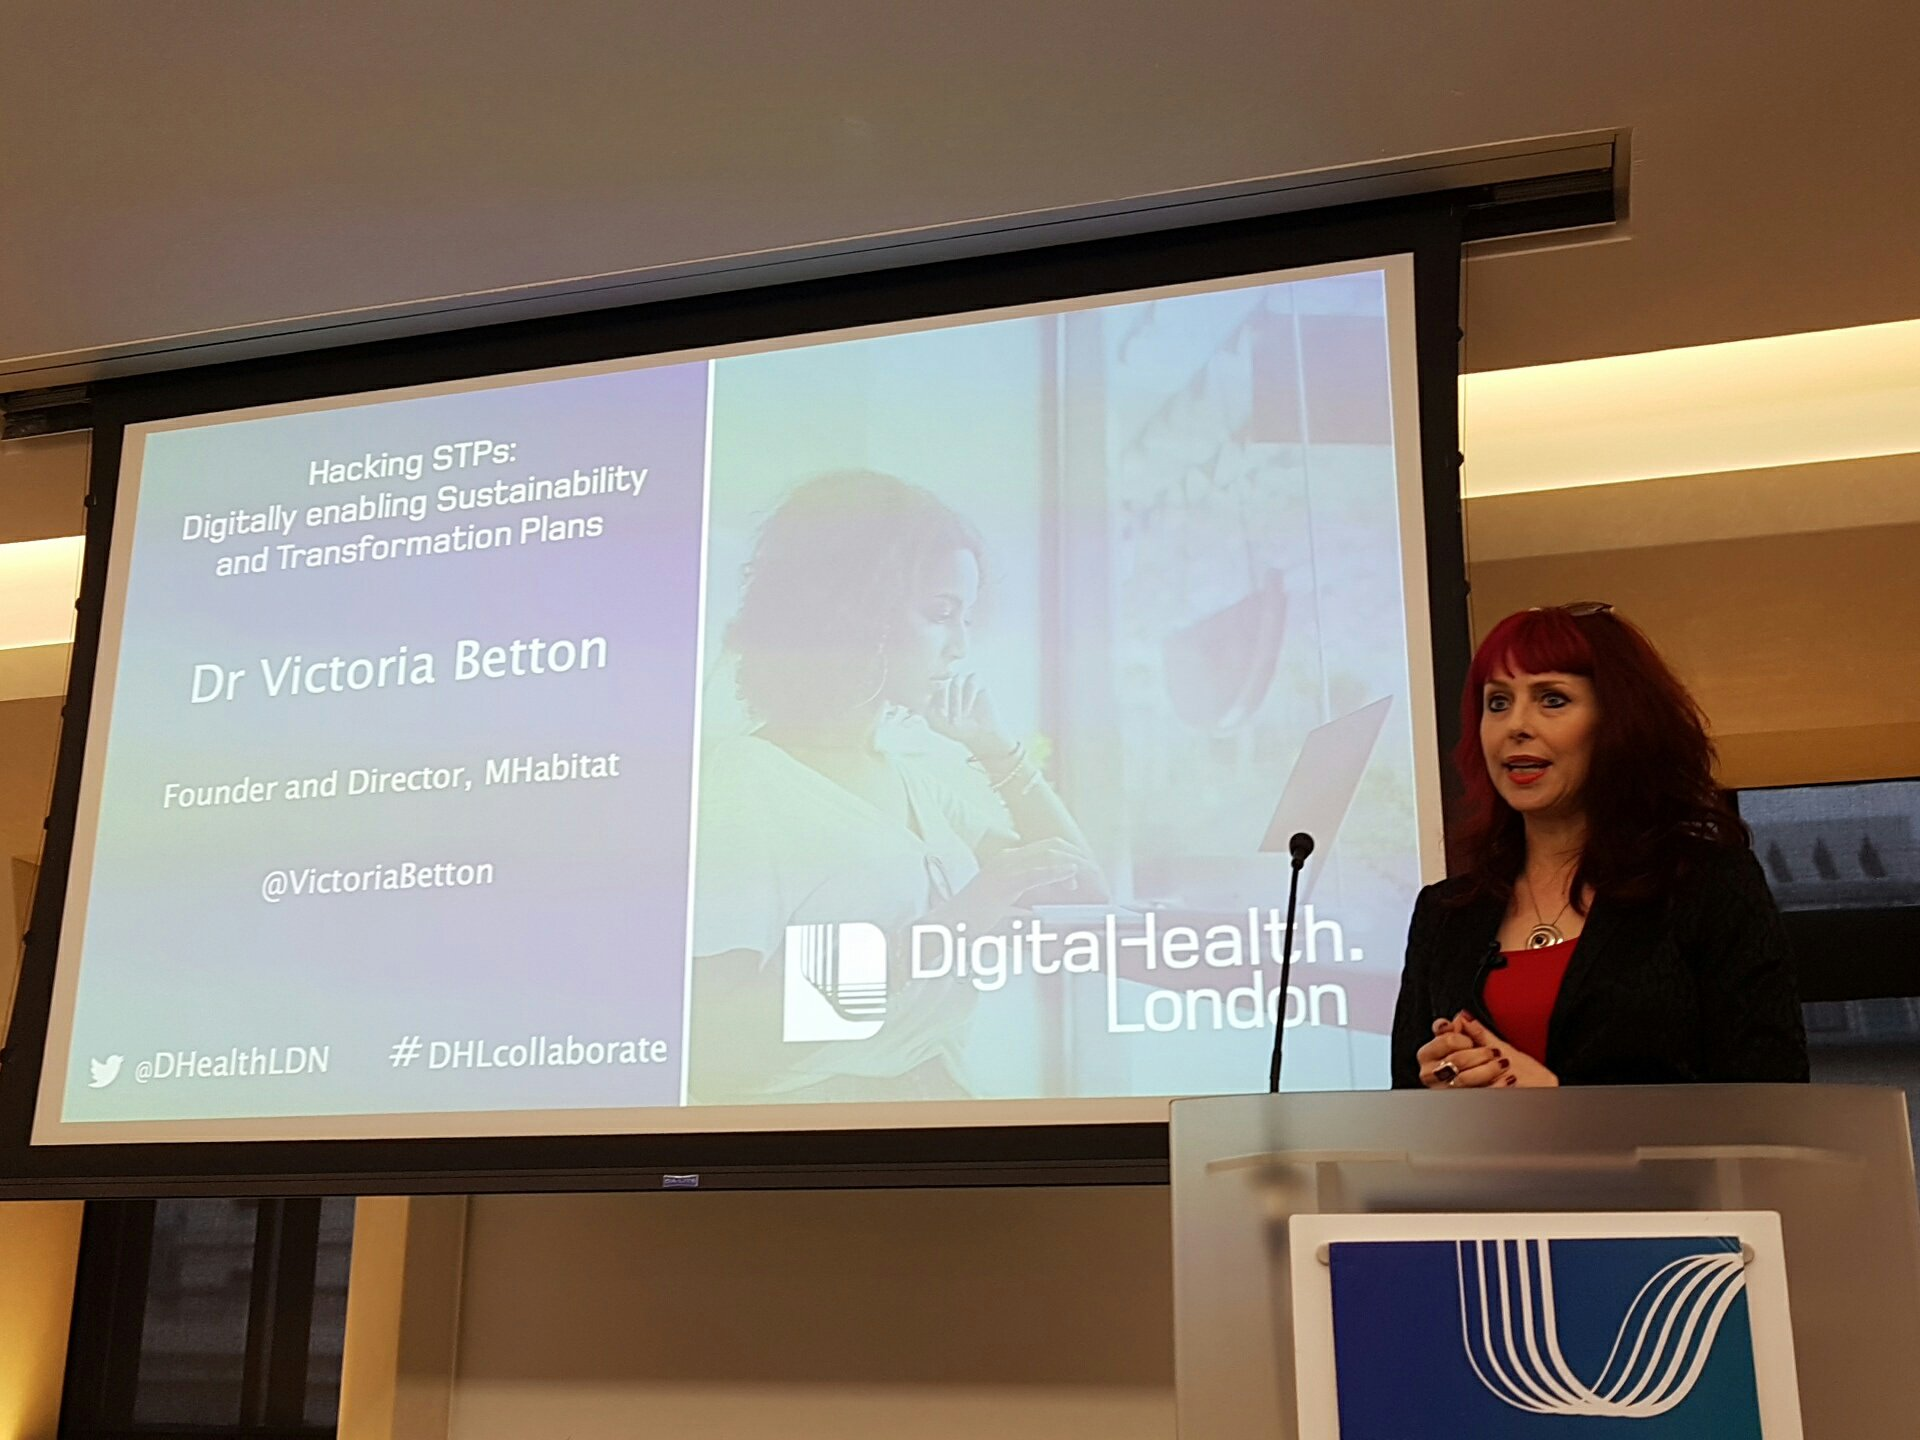 I finally met @VictoriaBetton - marital and chair of this section on hacking STPs #DHLcollaborate https://t.co/RgJAzuisH5